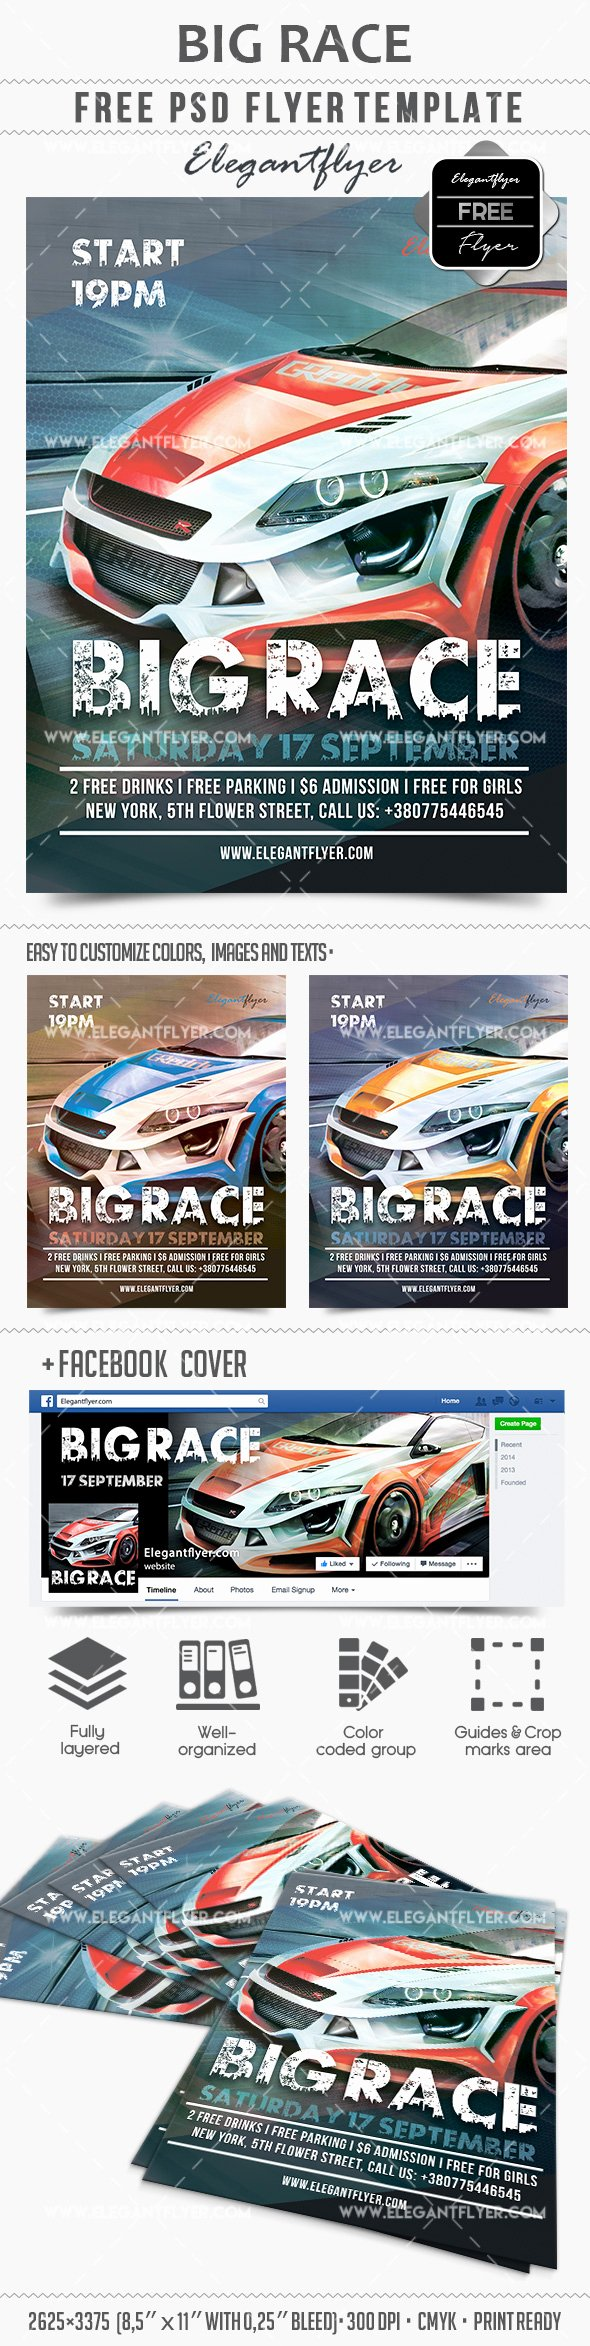 Blank Car Show Flyer Lovely Big Race – Free Flyer Psd Template – by Elegantflyer